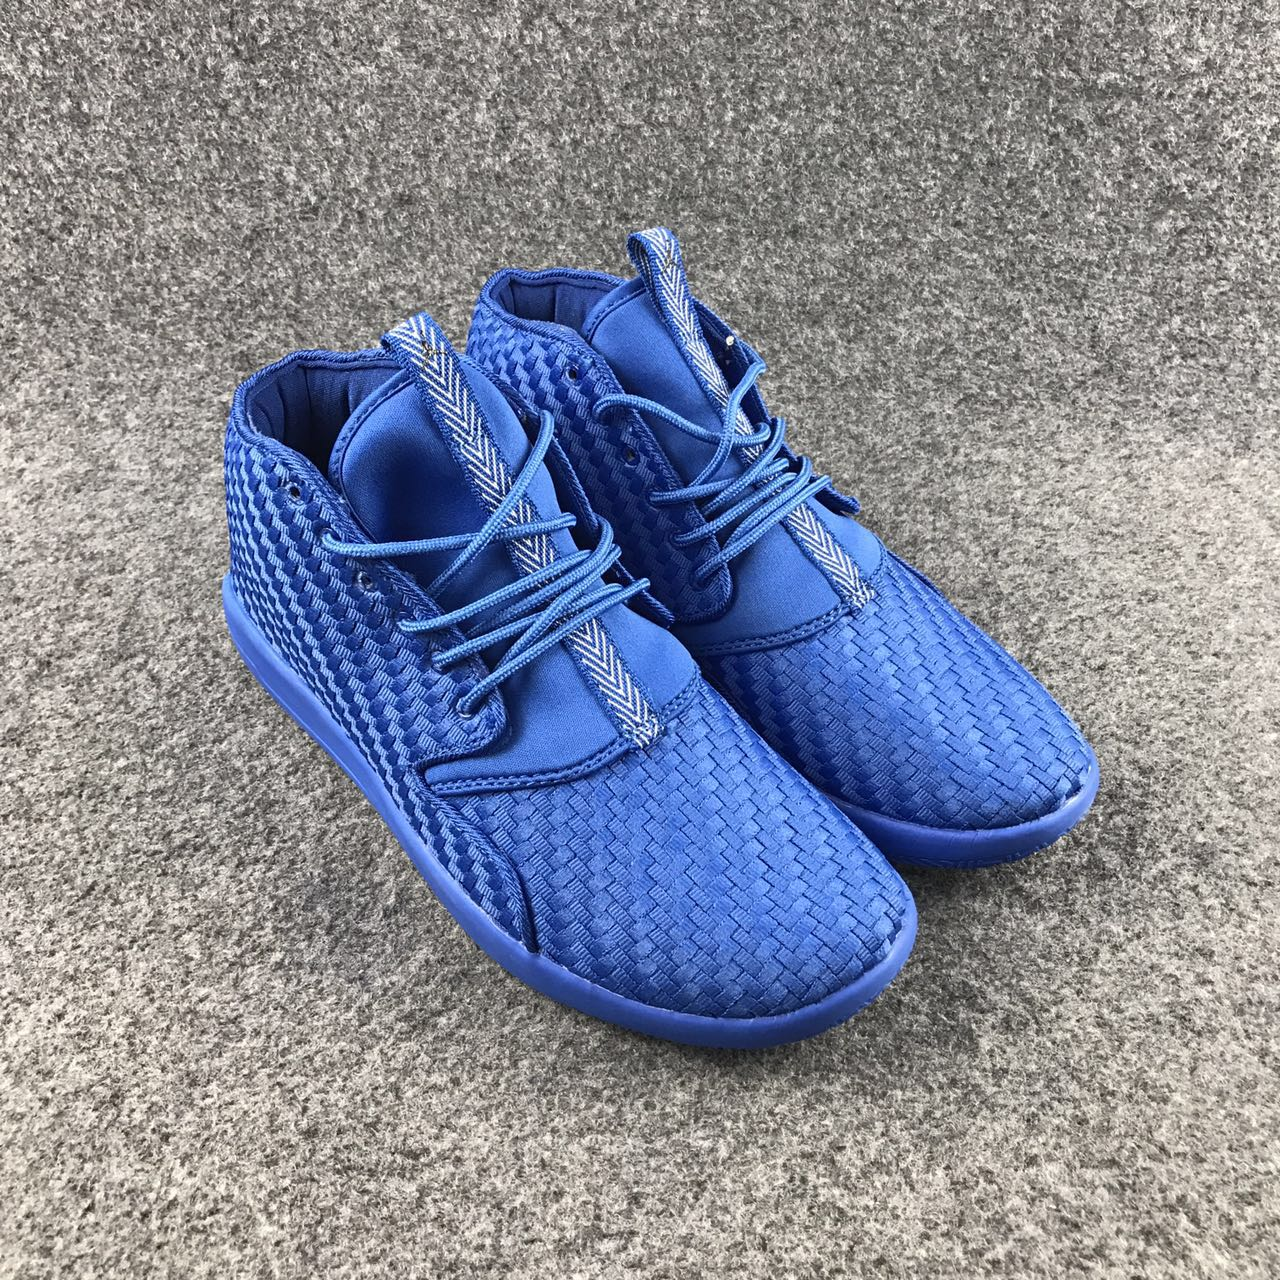 Original Air Jordan Eclipse Blue Shoes